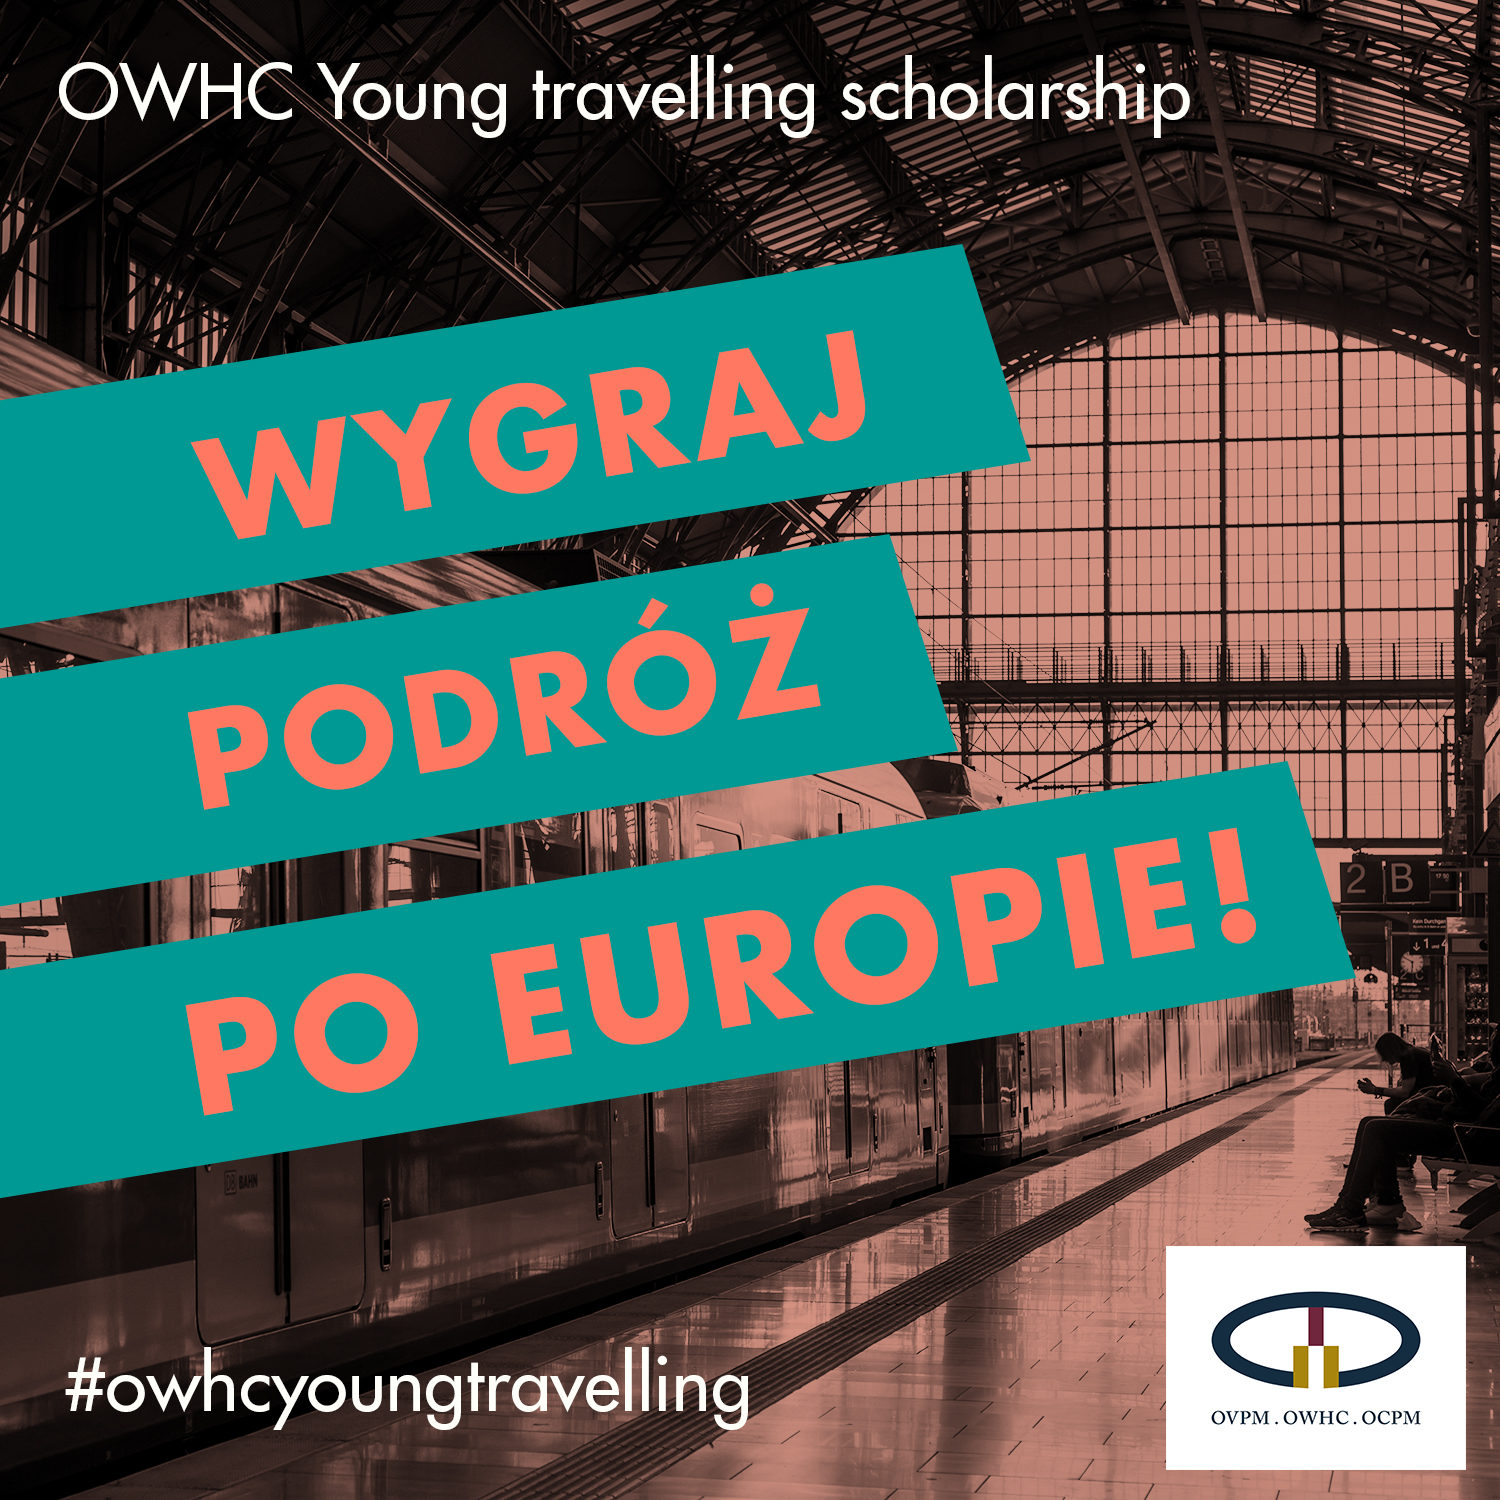 OWHC Young travelling Scholarship